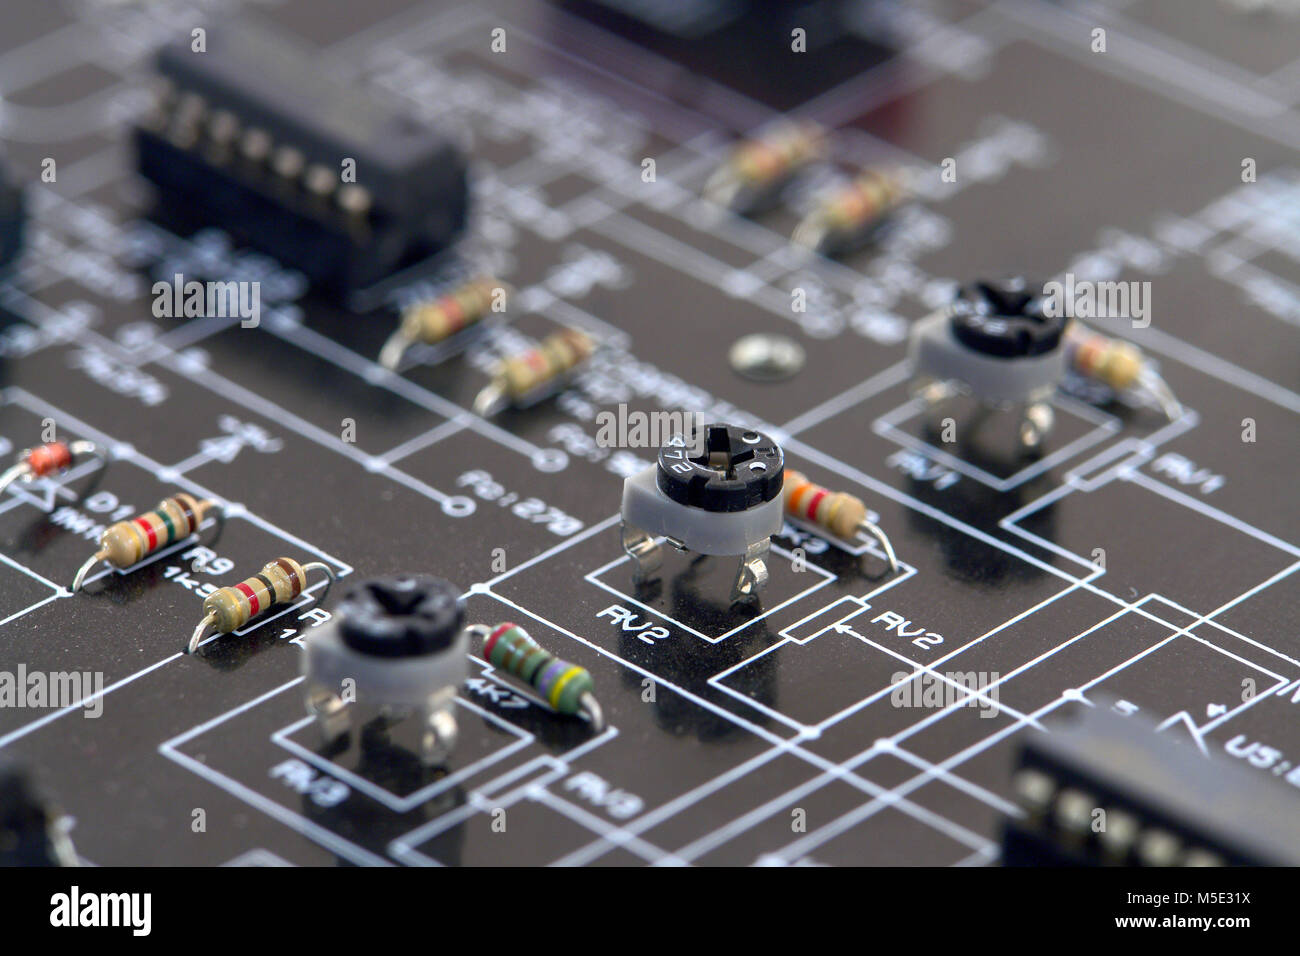 Schematic Image Stock Photos Images Alamy Glass On The Electronic Diagramideal Technology Background Circuit Details